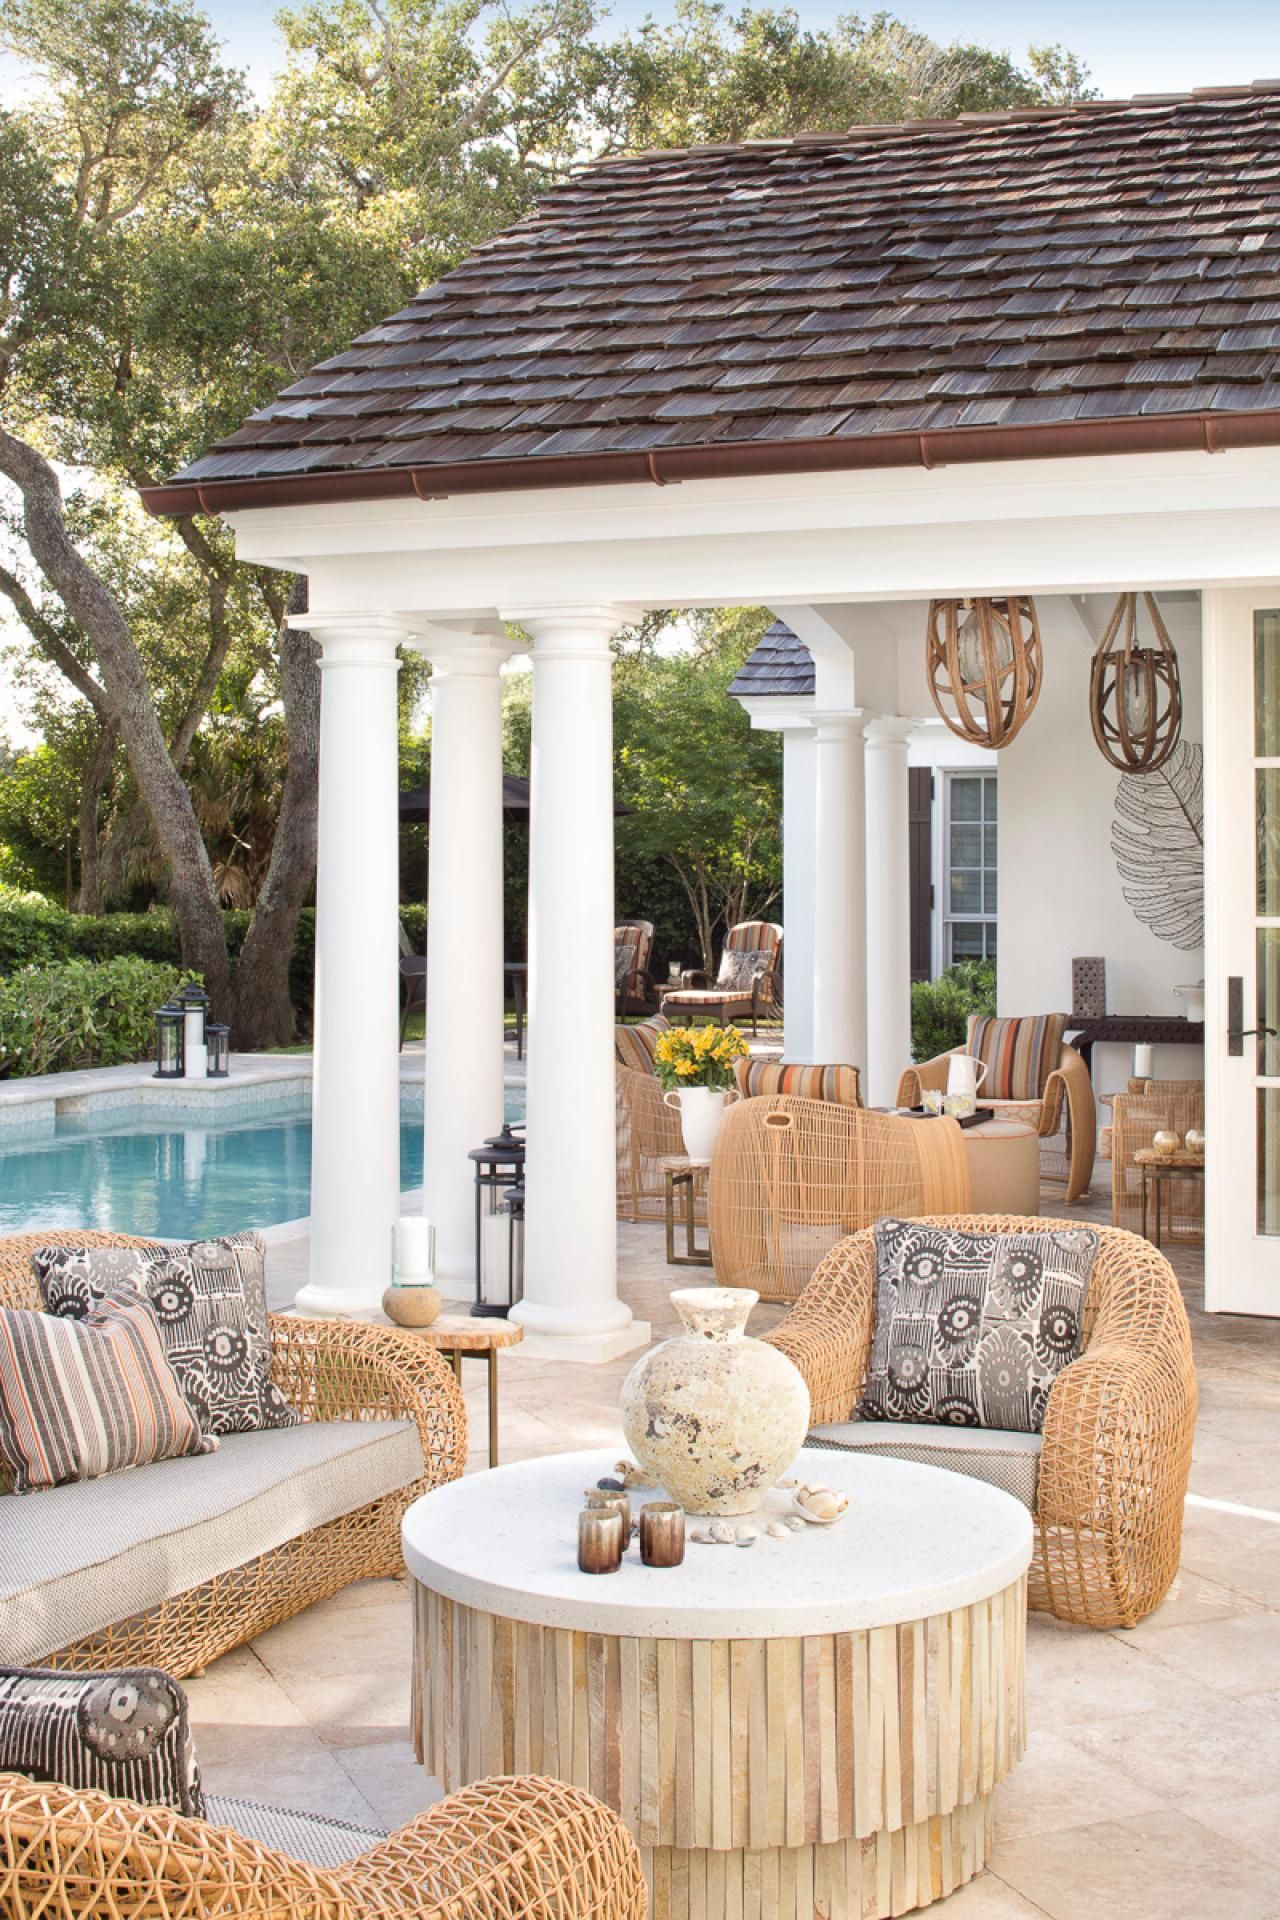 Enjoy the scenery and the pool in this tropical backyard. Wicker chairs, bold decorative patterns and a thatched coffee table are all included in this outdoor seating area.